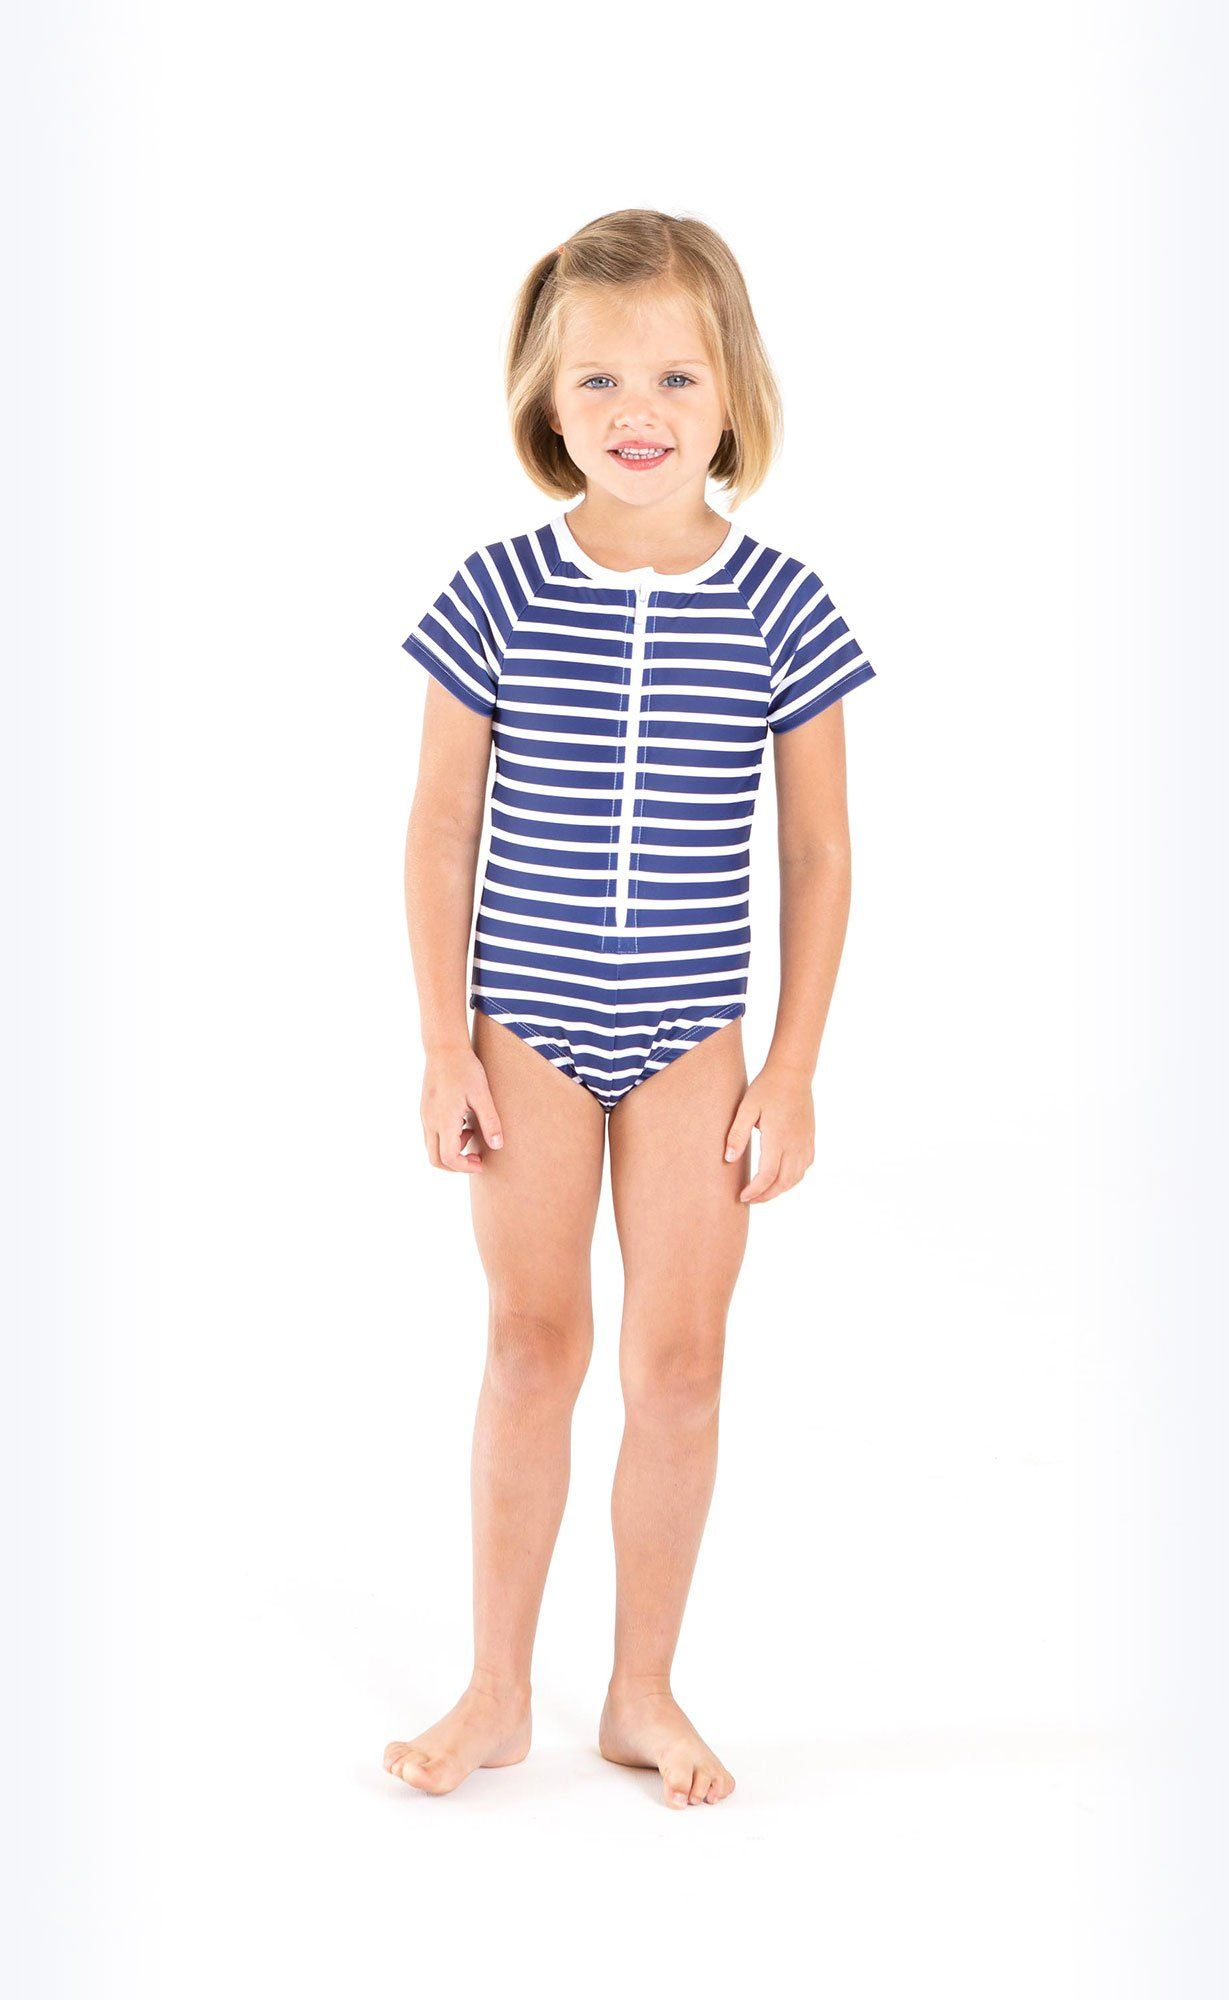 Cover Kids Short-Sleeved Swimsuit - Navy Stripes